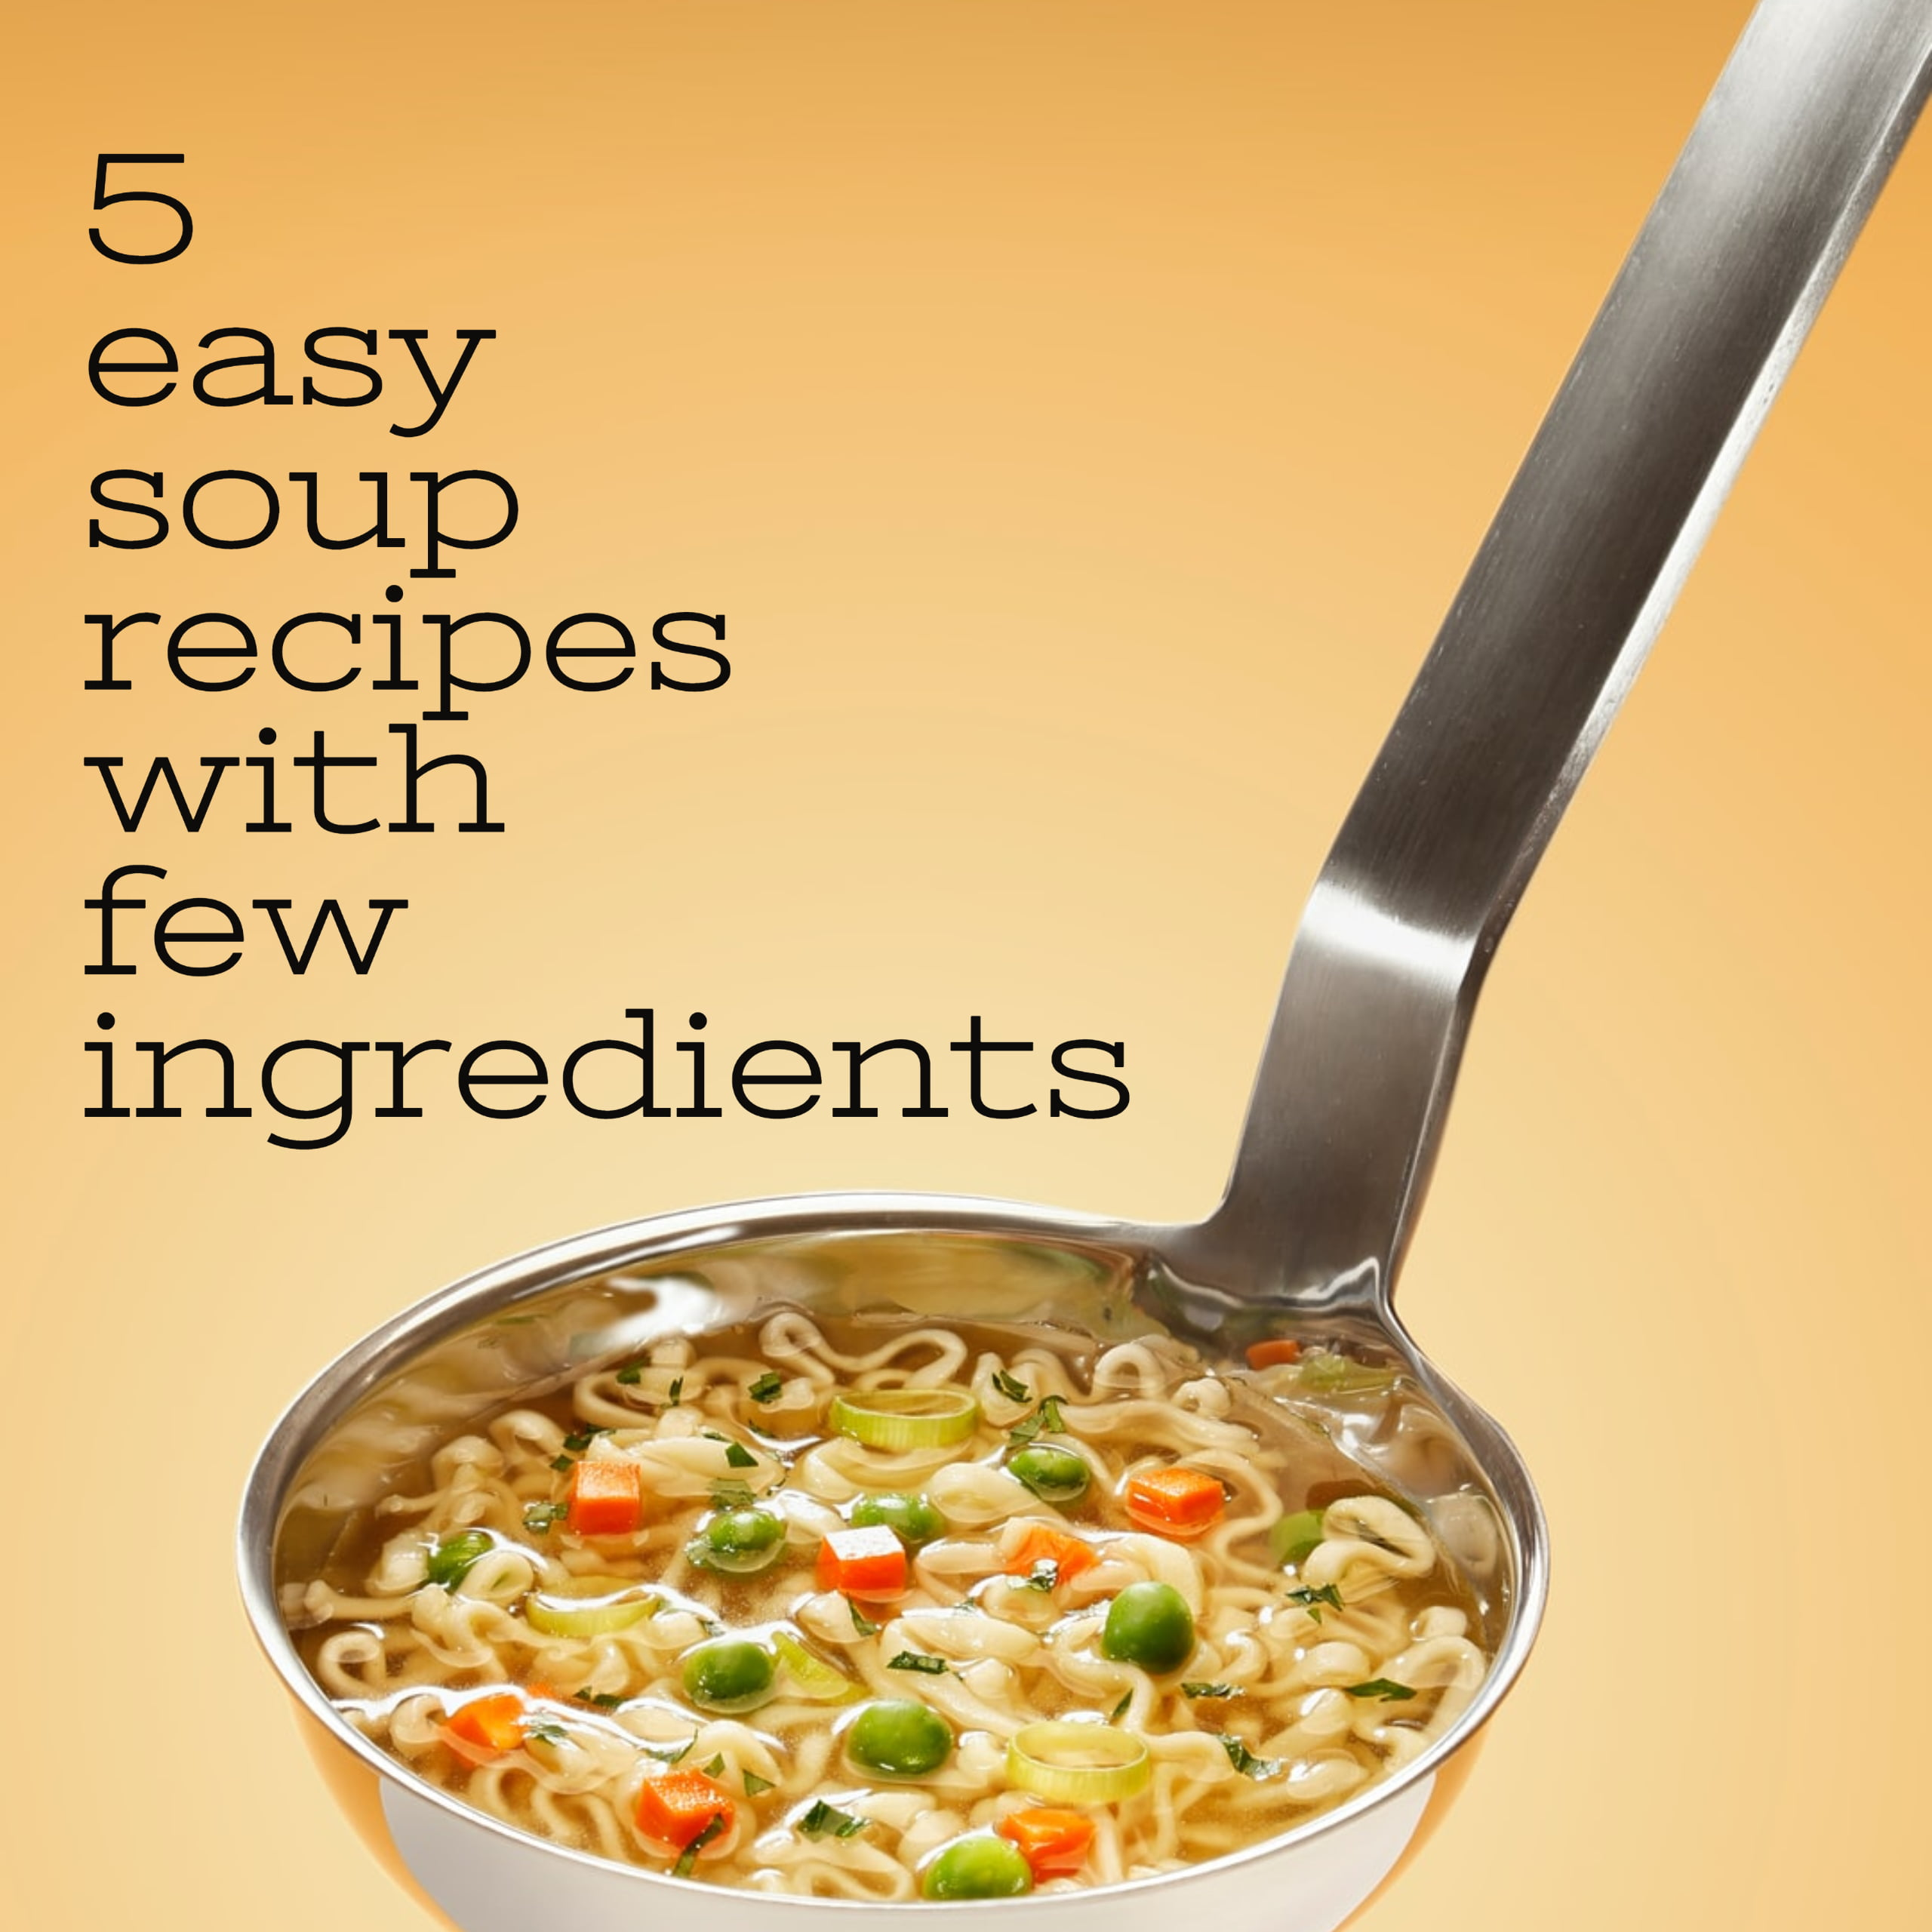 5 Easy Soup Recipes with few ingredients